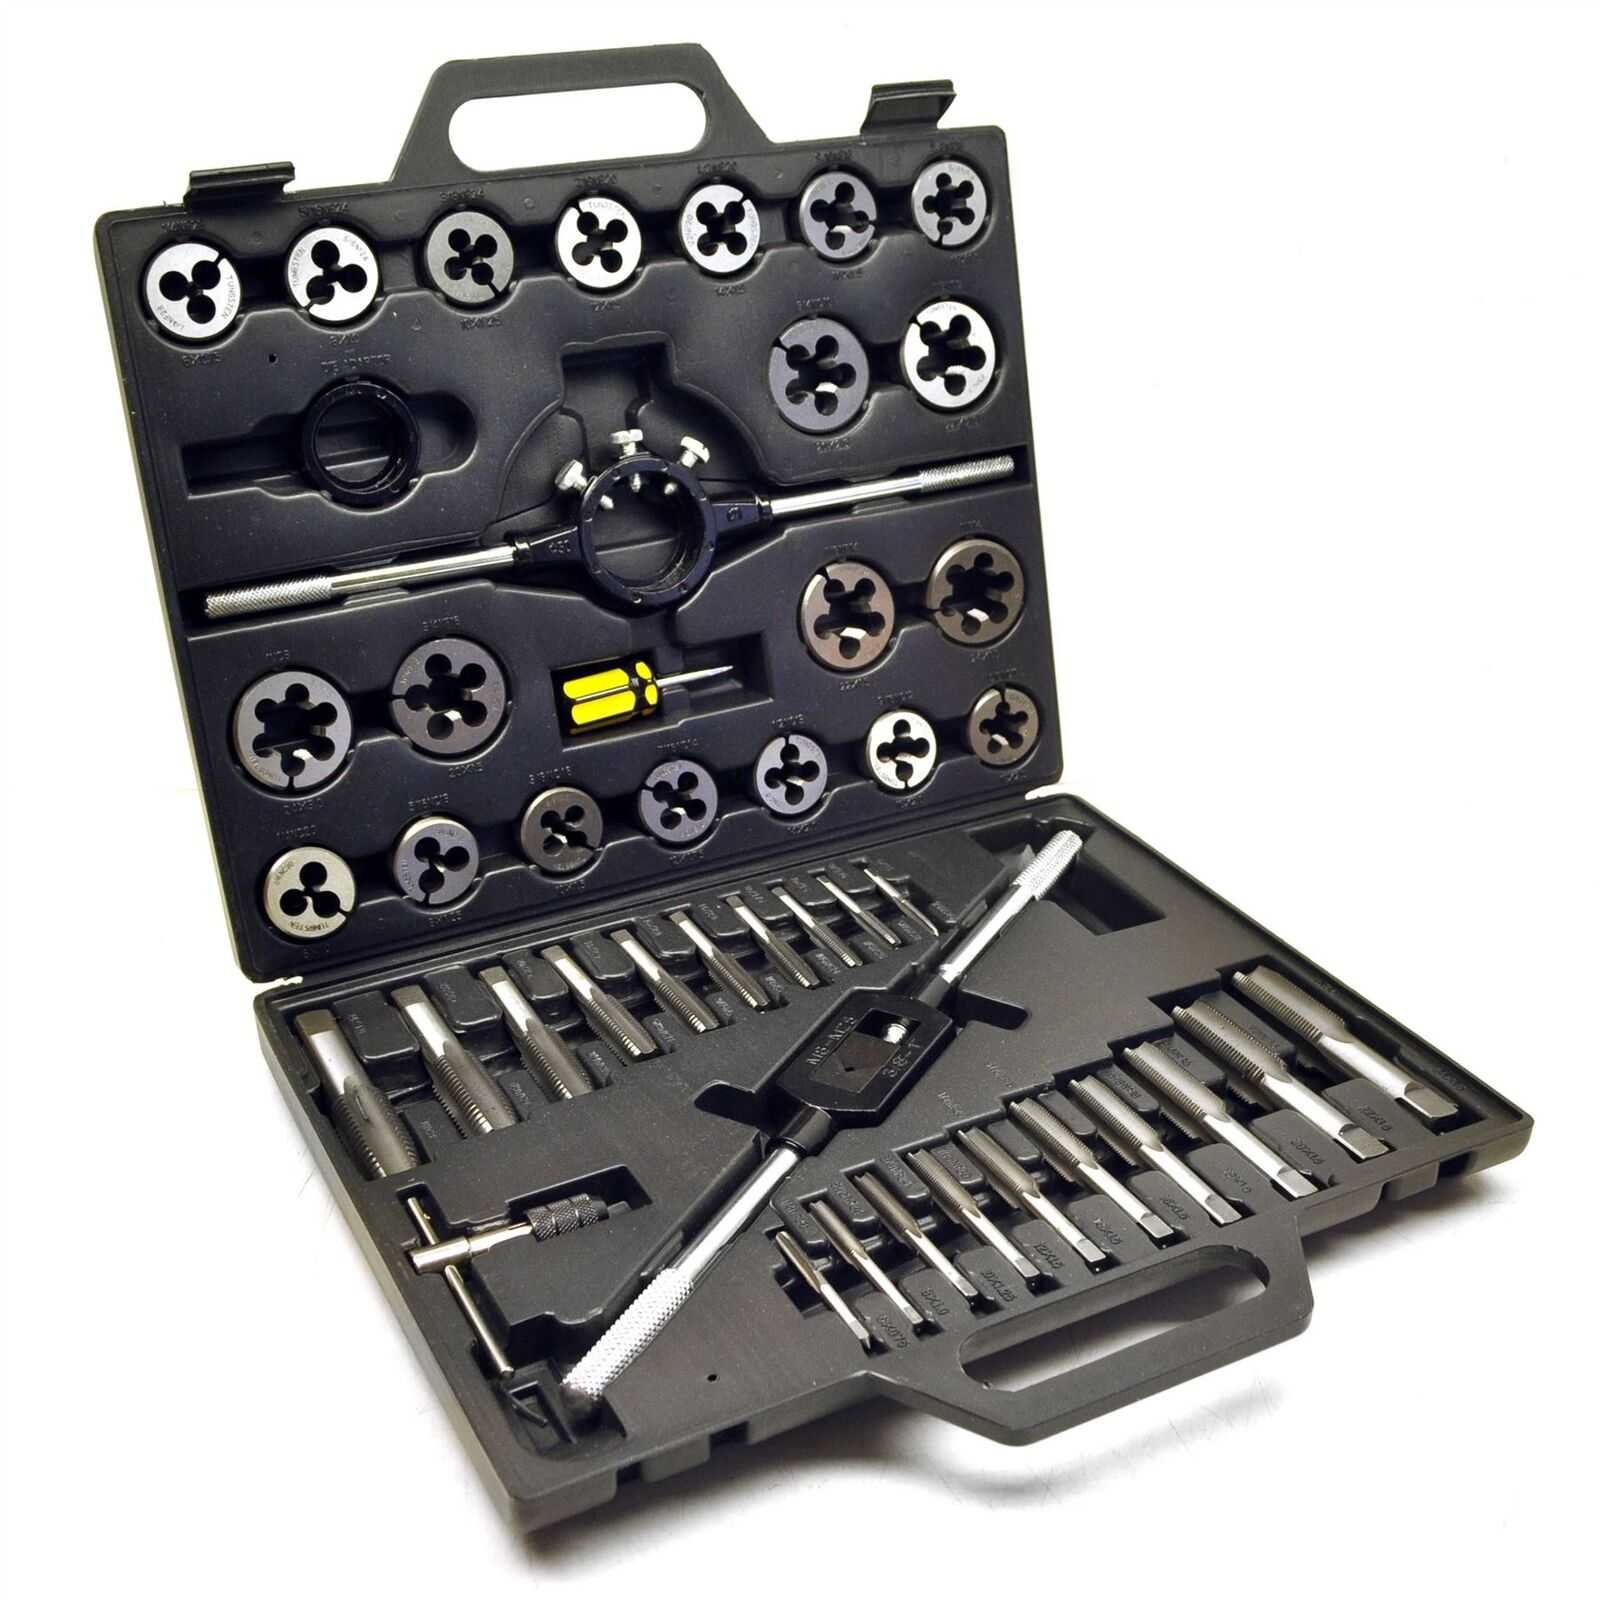 AF / imperial / unf - unc tap and die set 45pcs by US Pro tools AT223